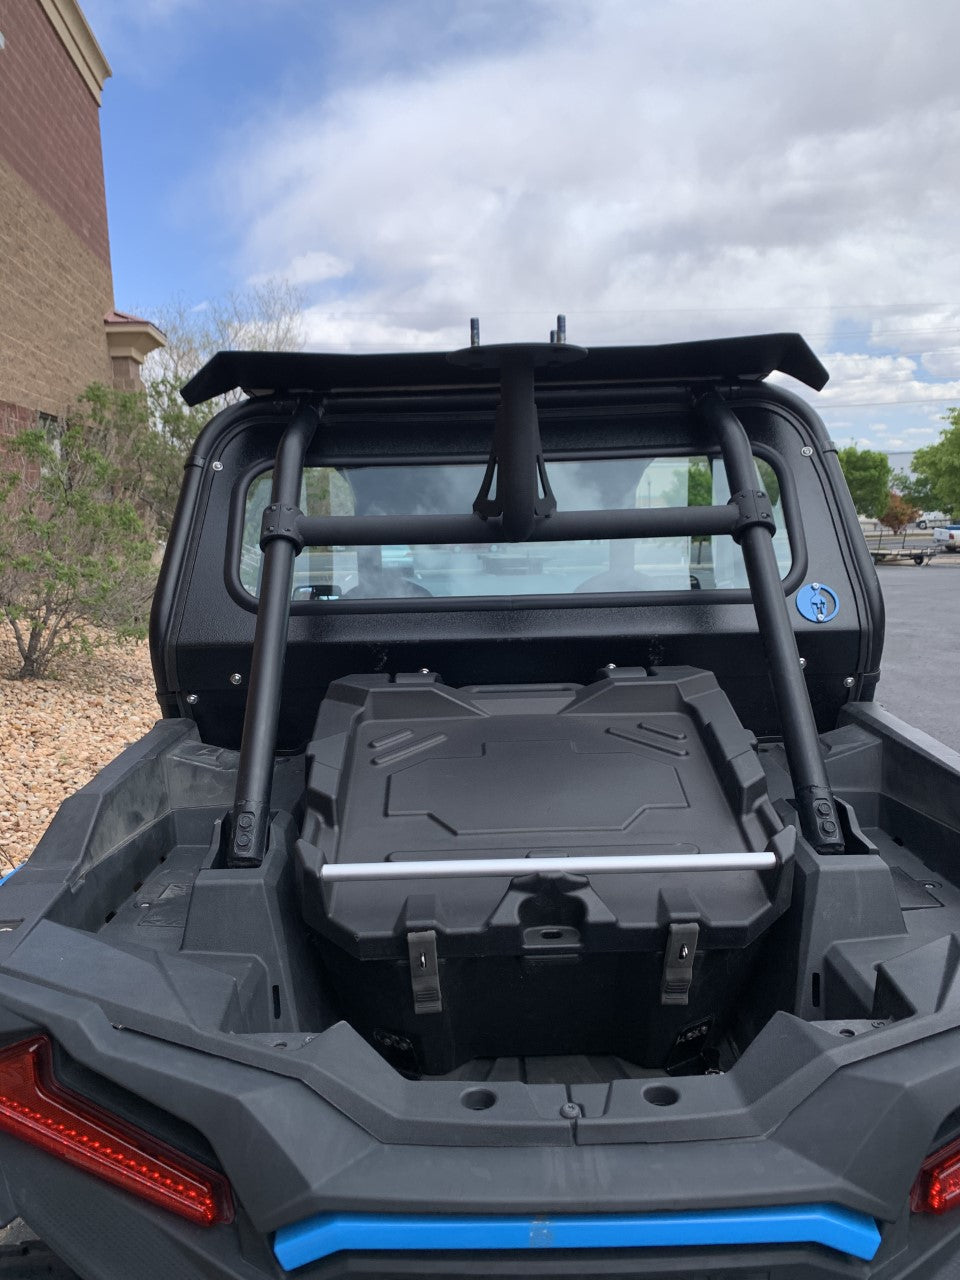 POLARIS RZR 1000XP/TURBO/900 2019+ REAR WINDSHIELD